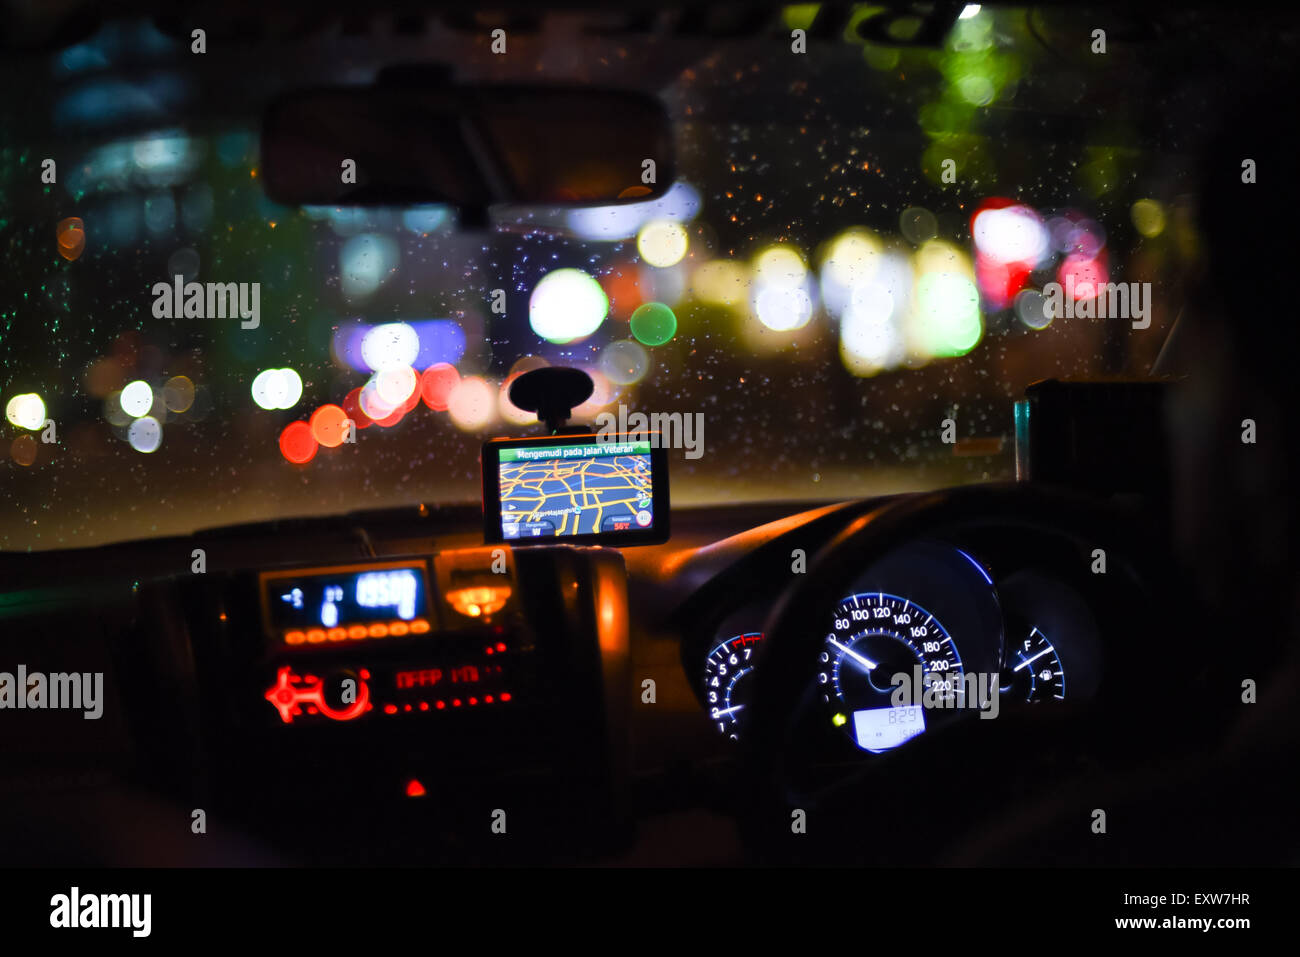 Taxi dashboard and interiors during night trip in Jakarta, Indonesia. - Stock Image